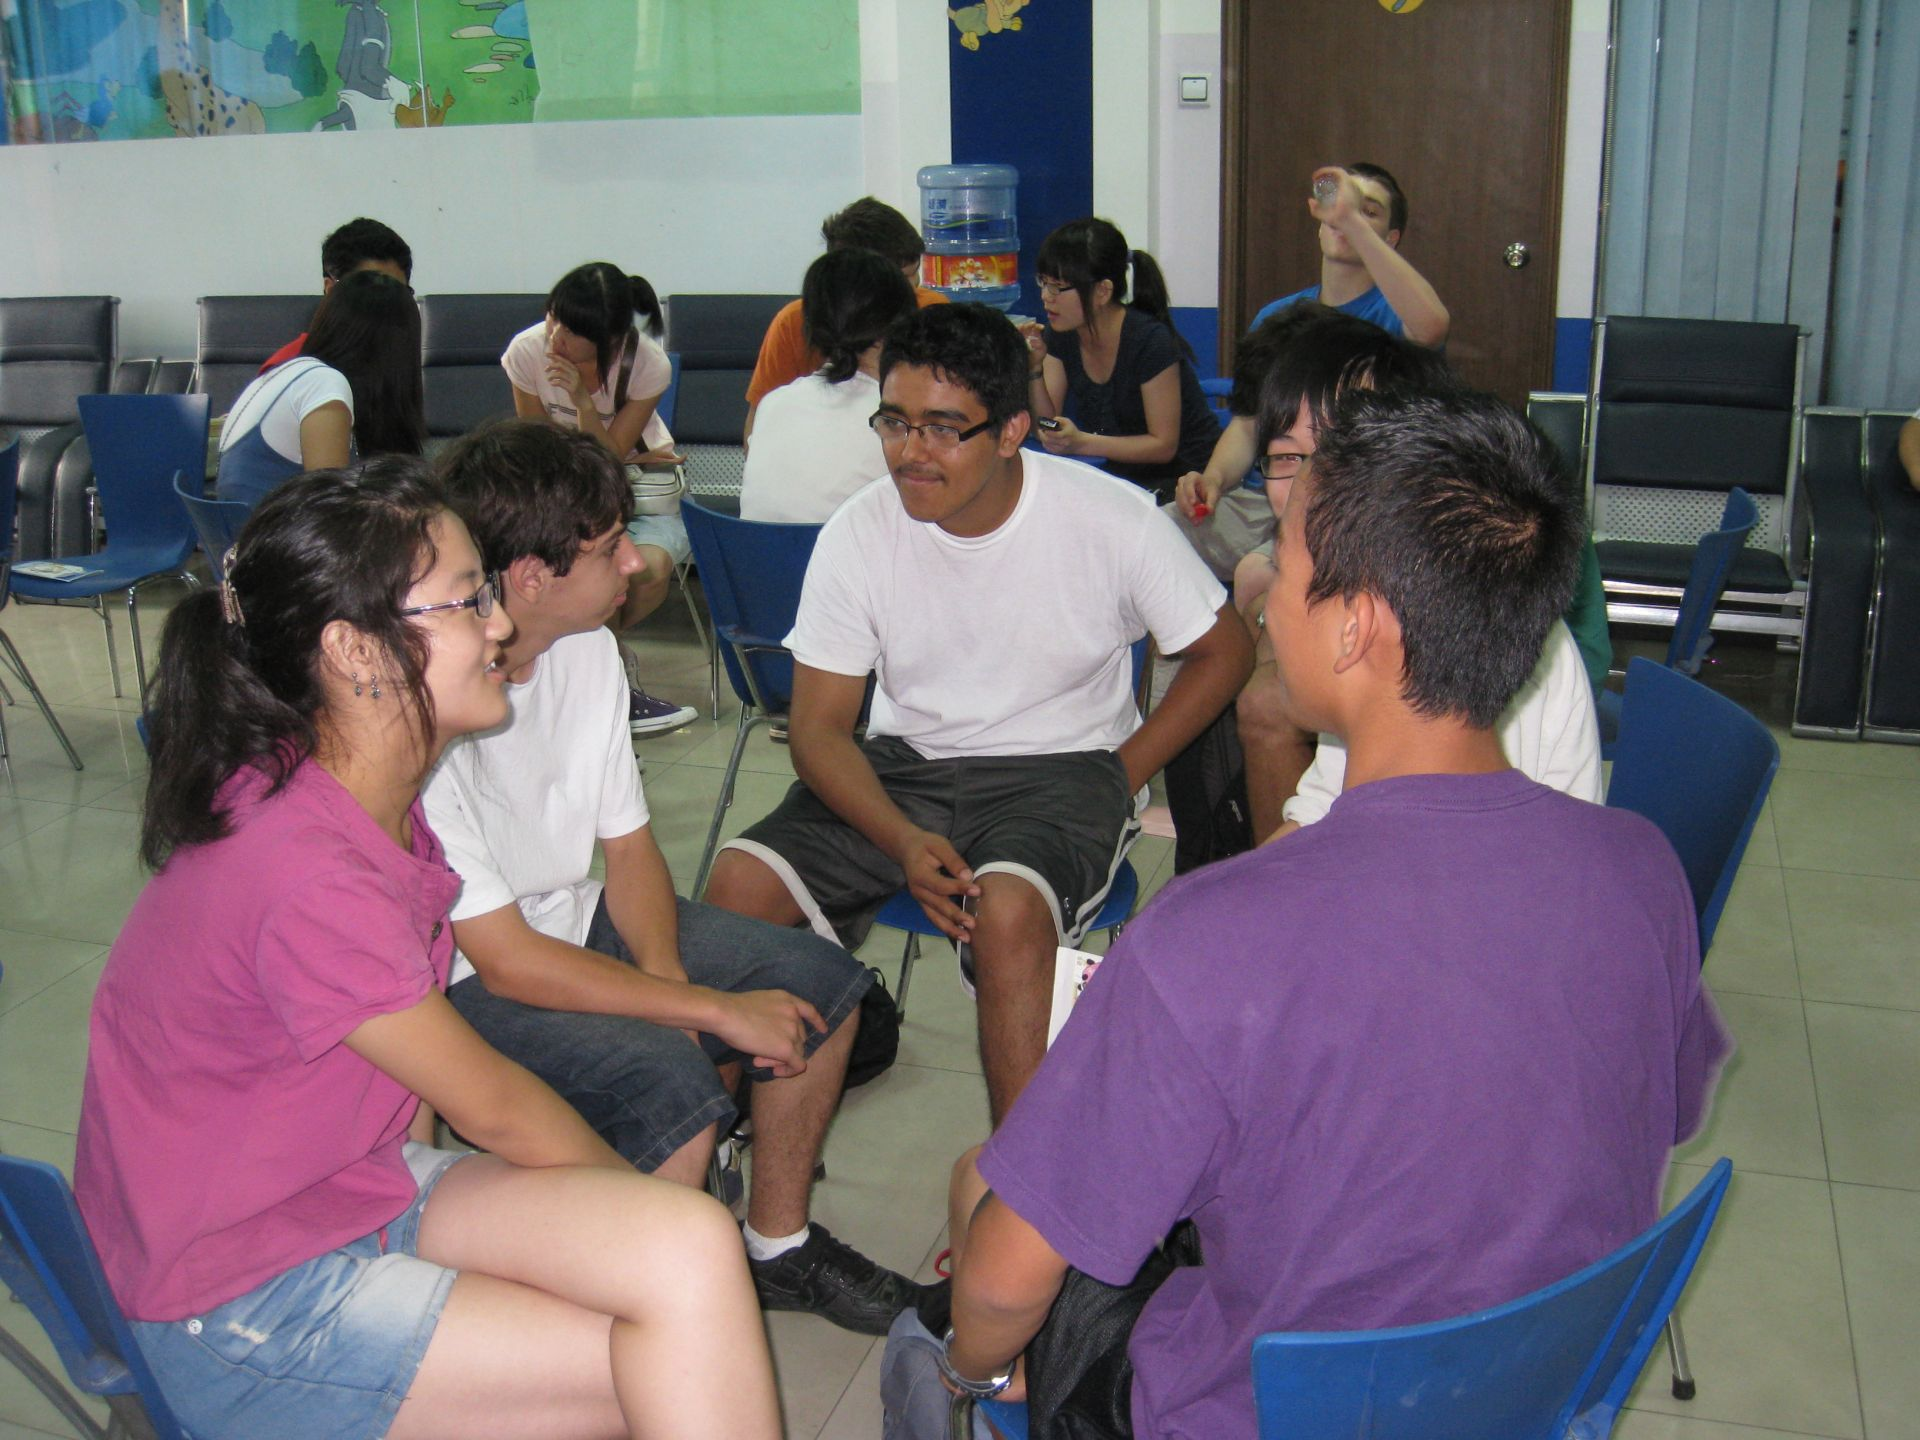 People interactions included organized gathering with multiple college students